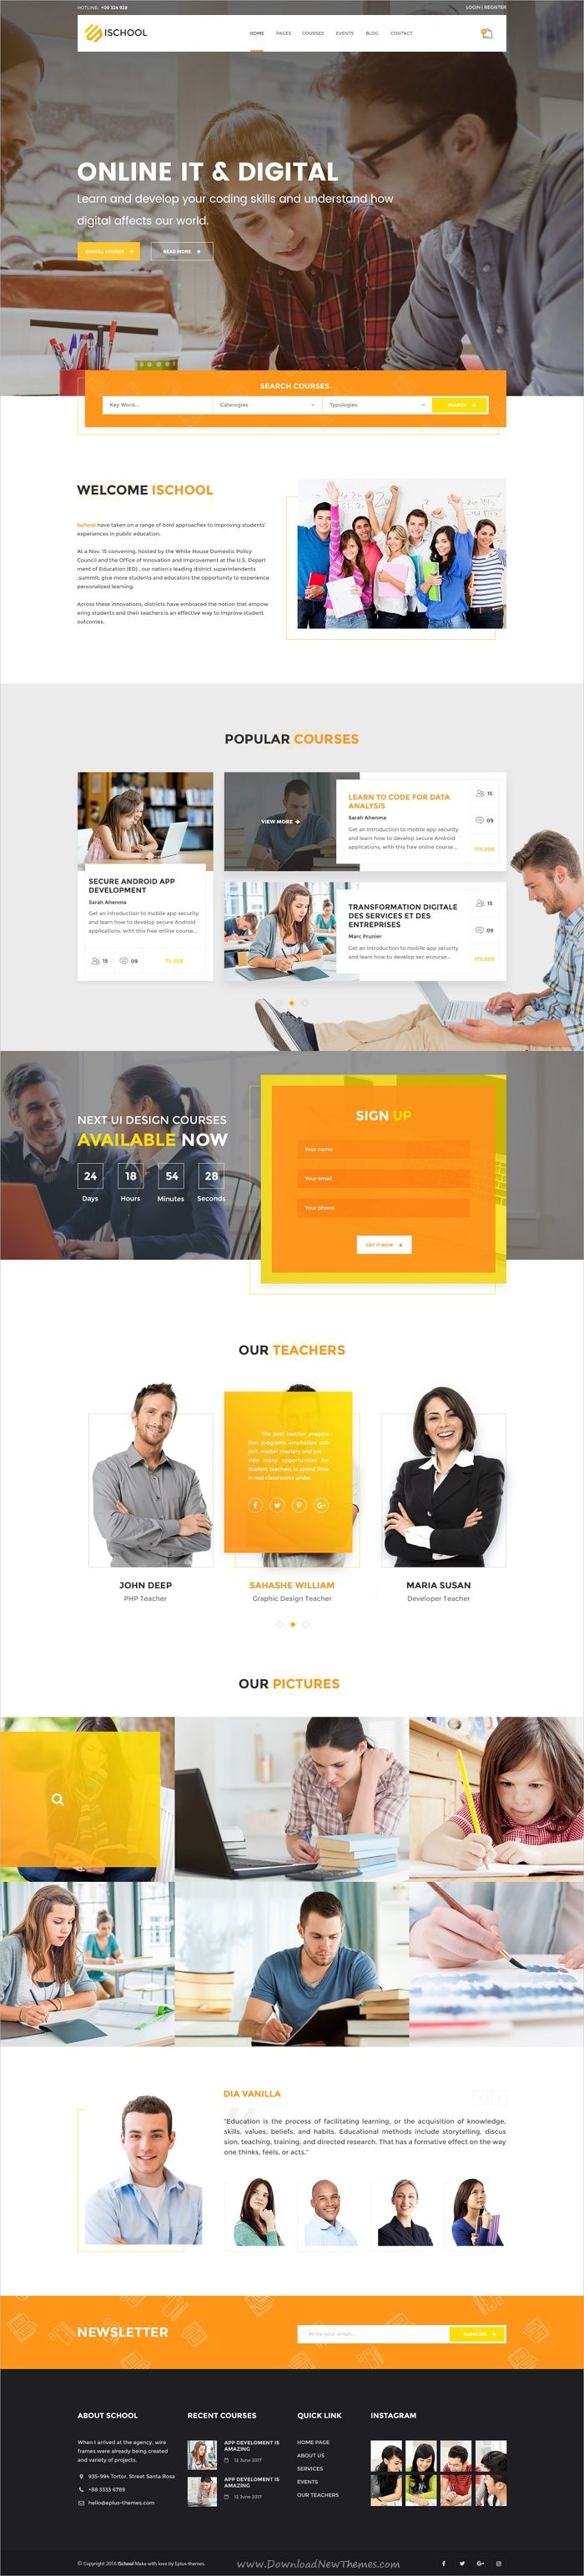 200+ best Web Design - Education images by Mike Farley on Pinterest ...